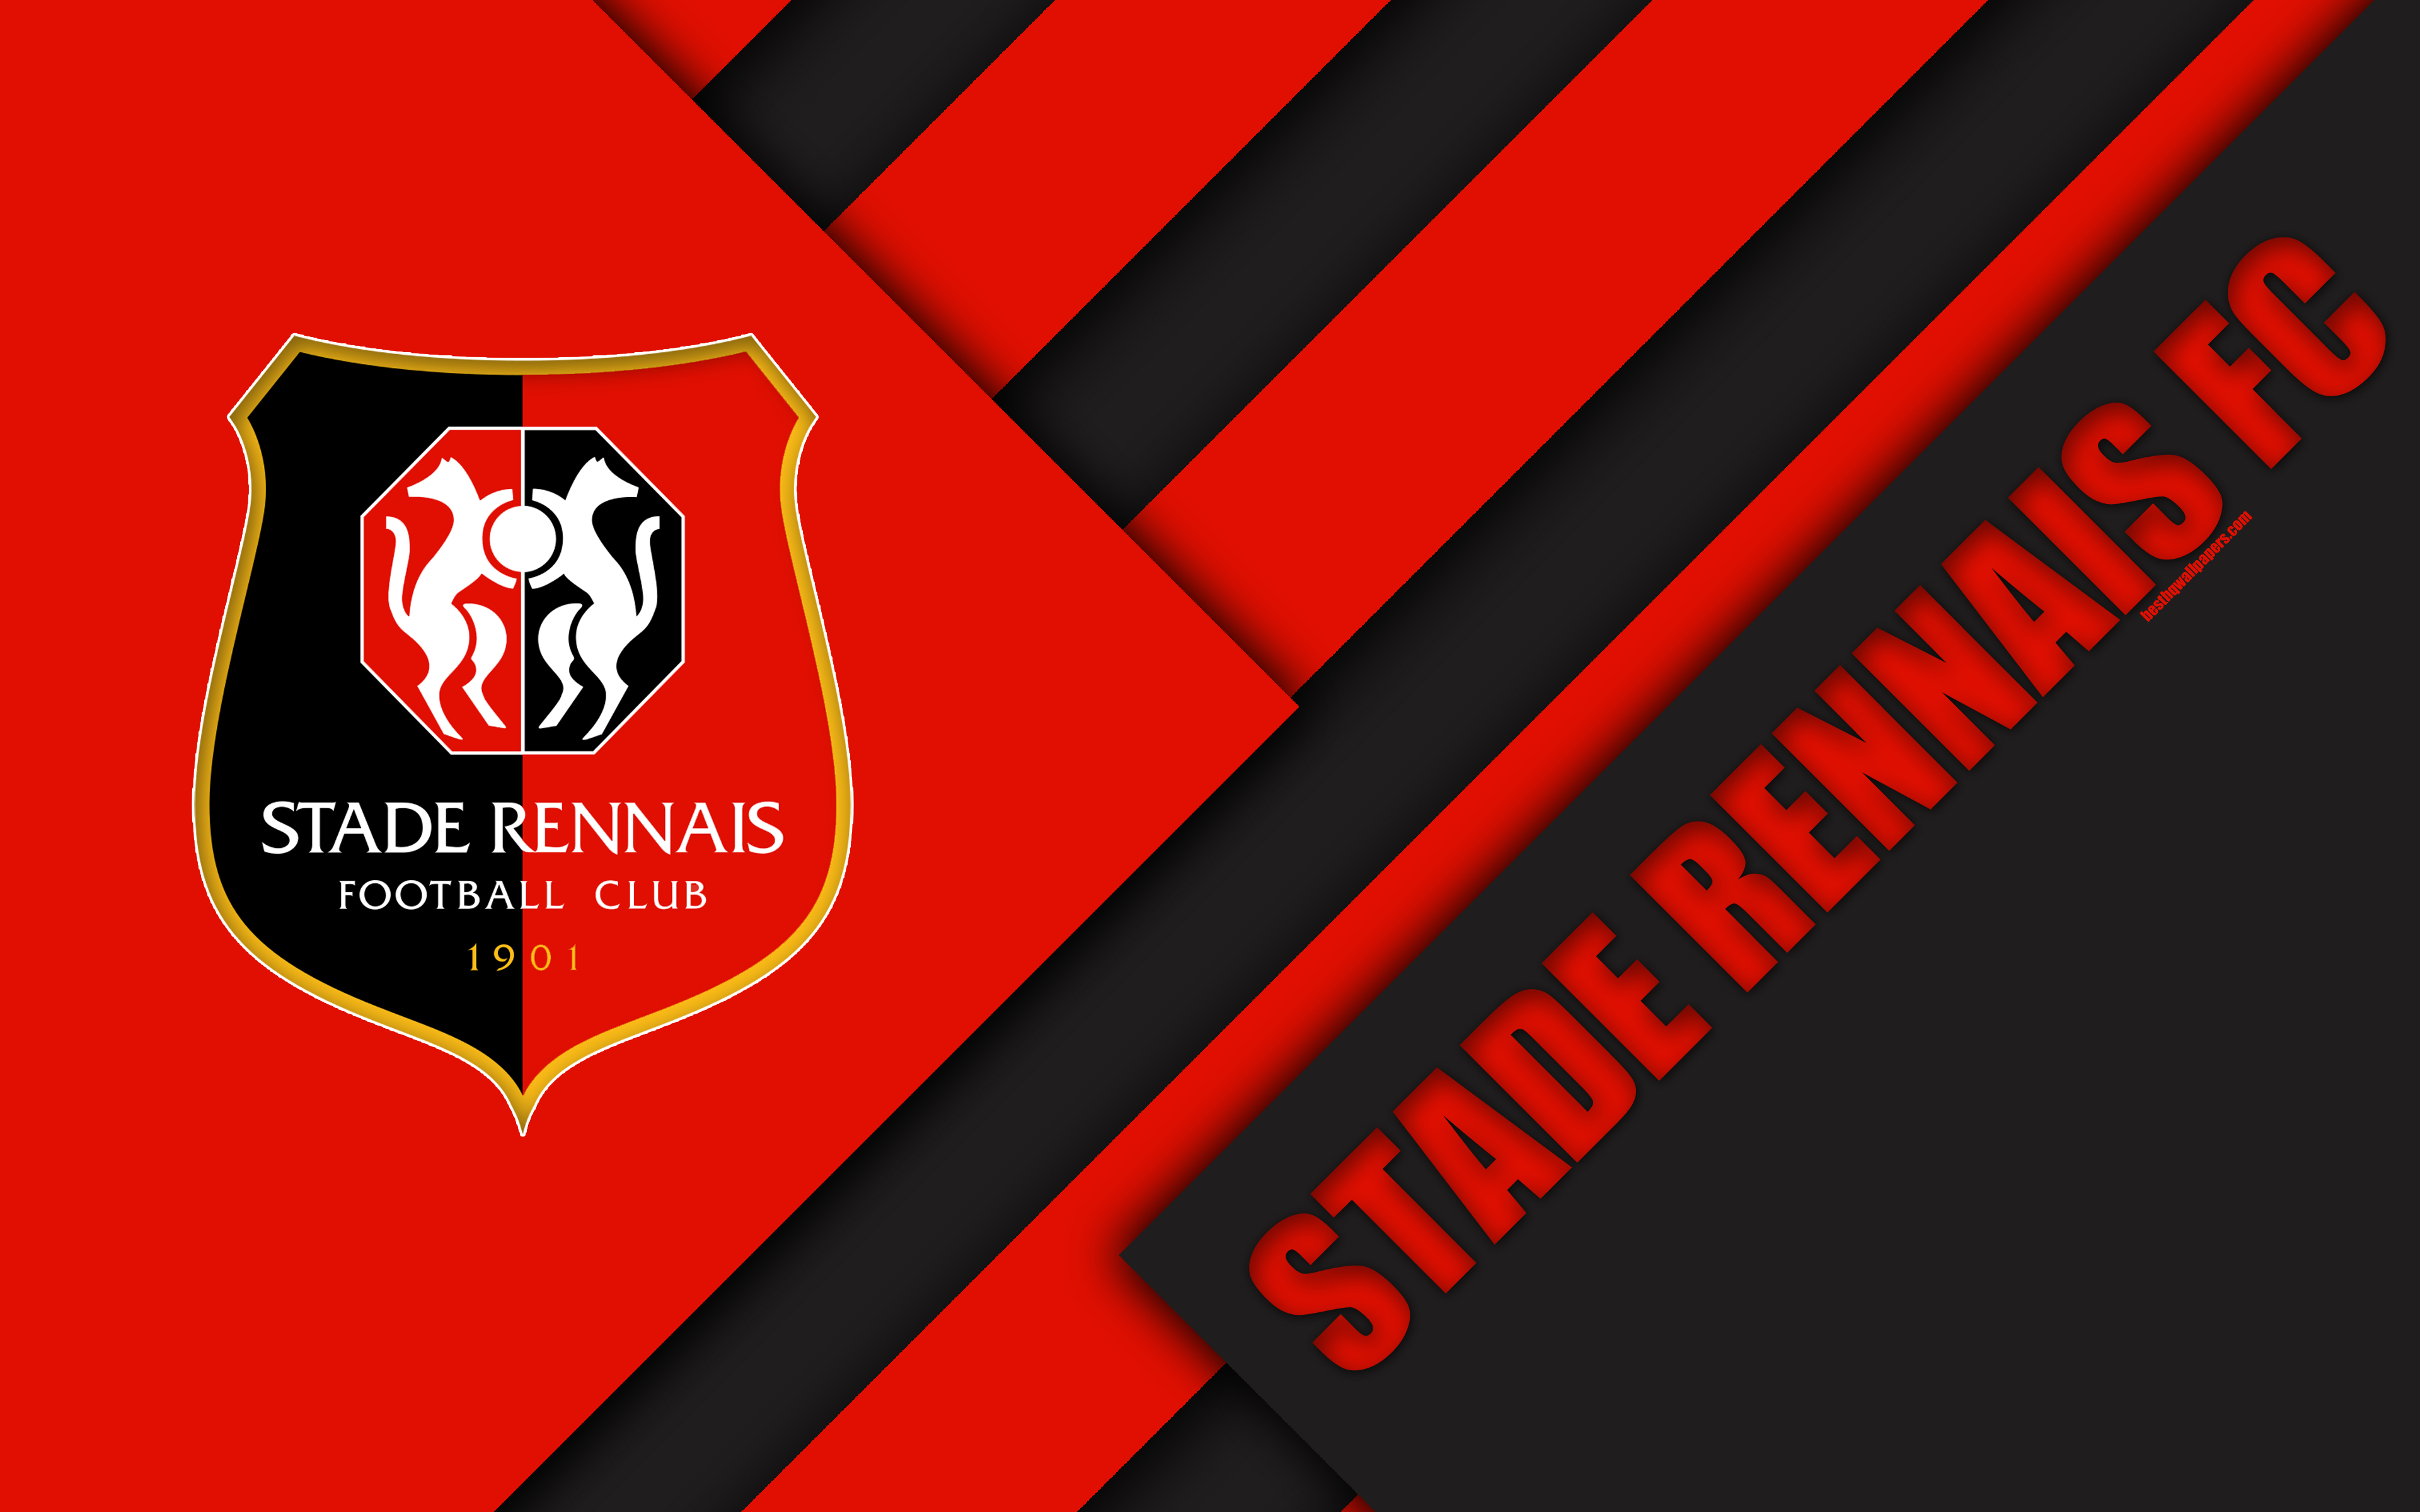 Download wallpapers Stade Rennais FC, 4k, material design, logo